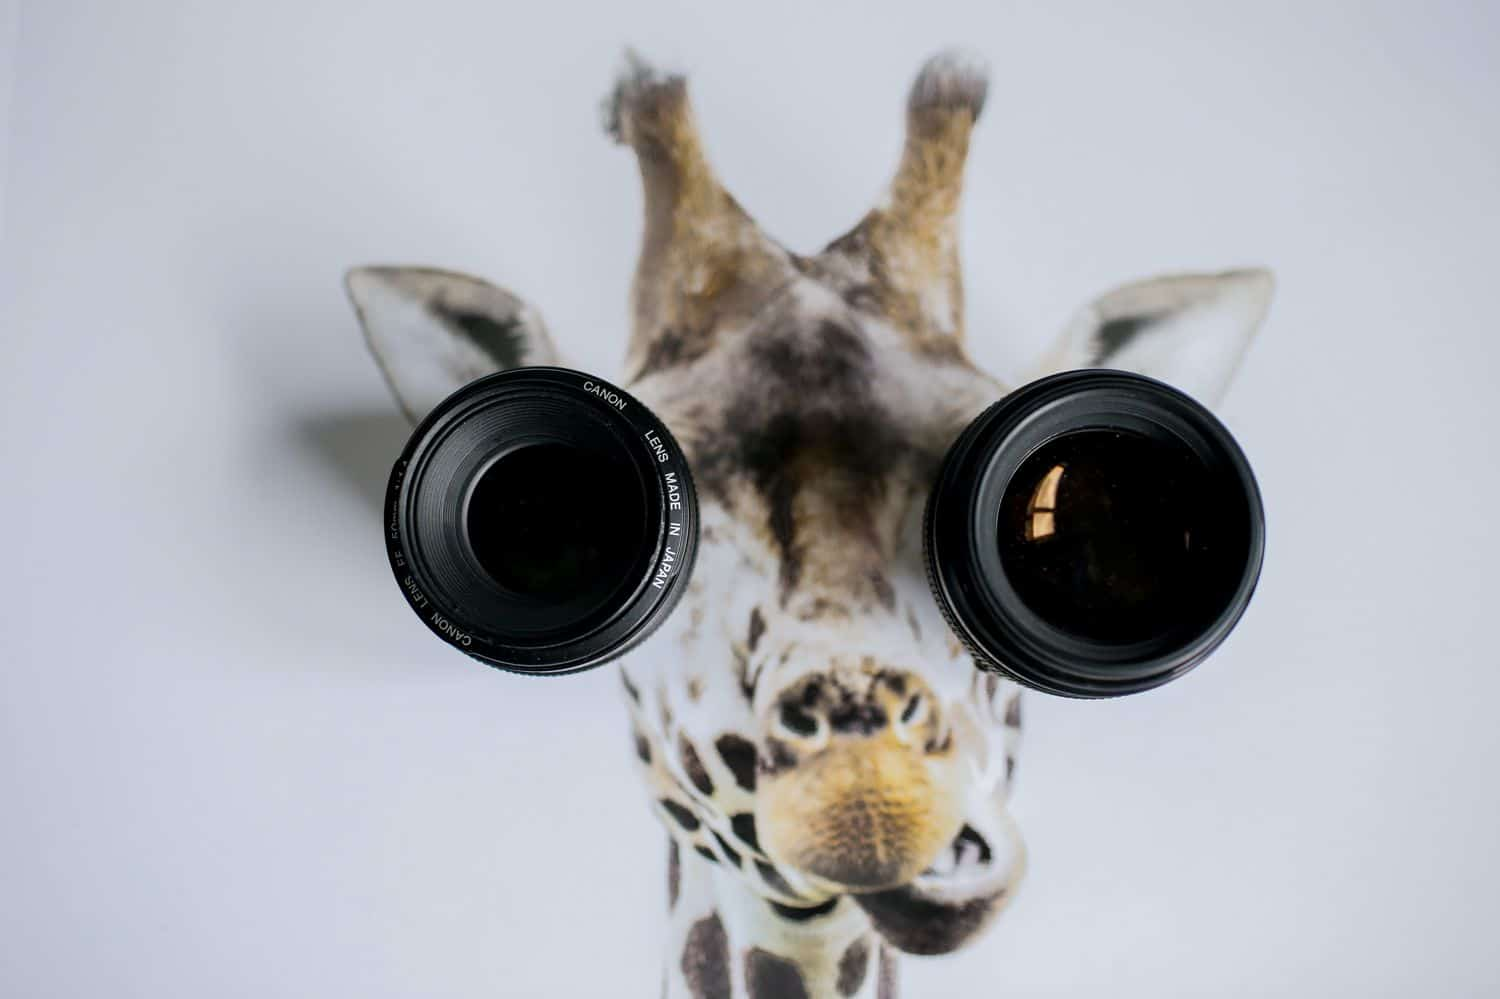 Two lenses cover the eyes of a giraffe in a painting.